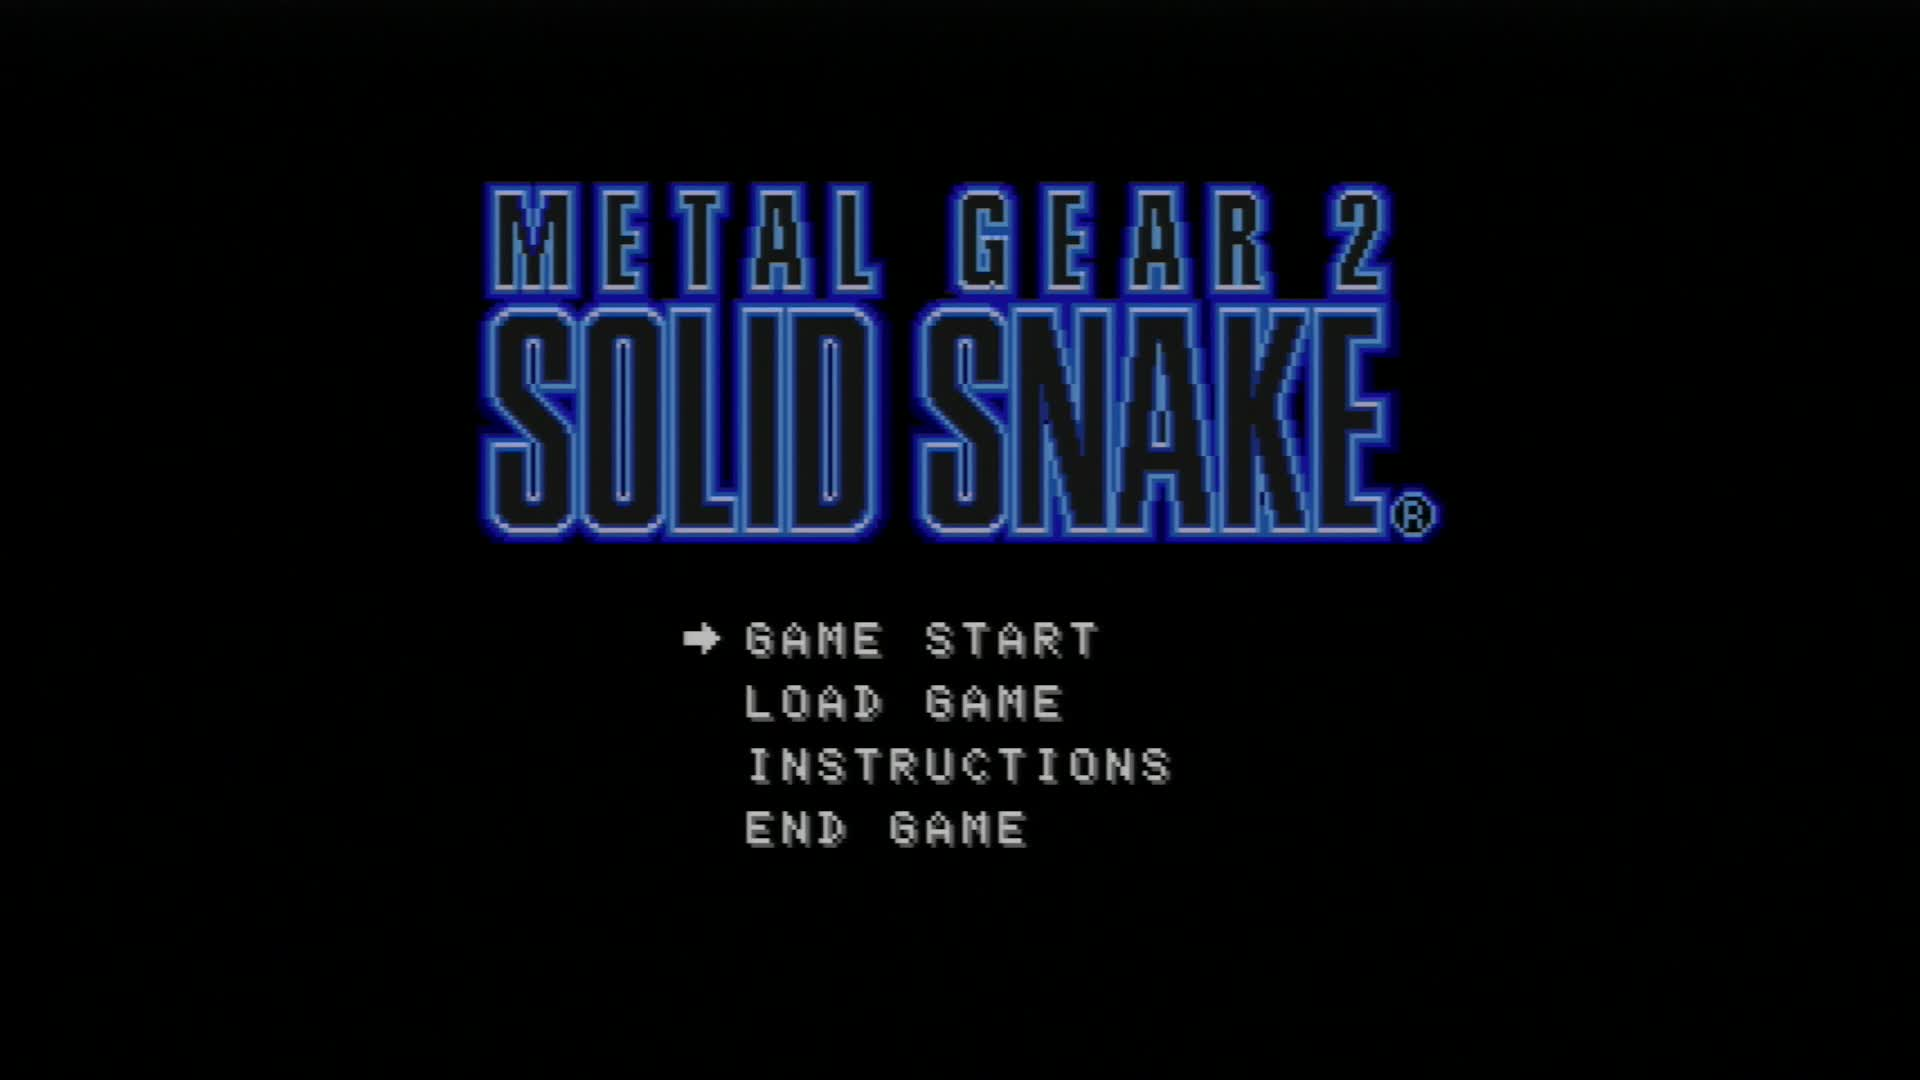 Metal Gear2 Solid Snake